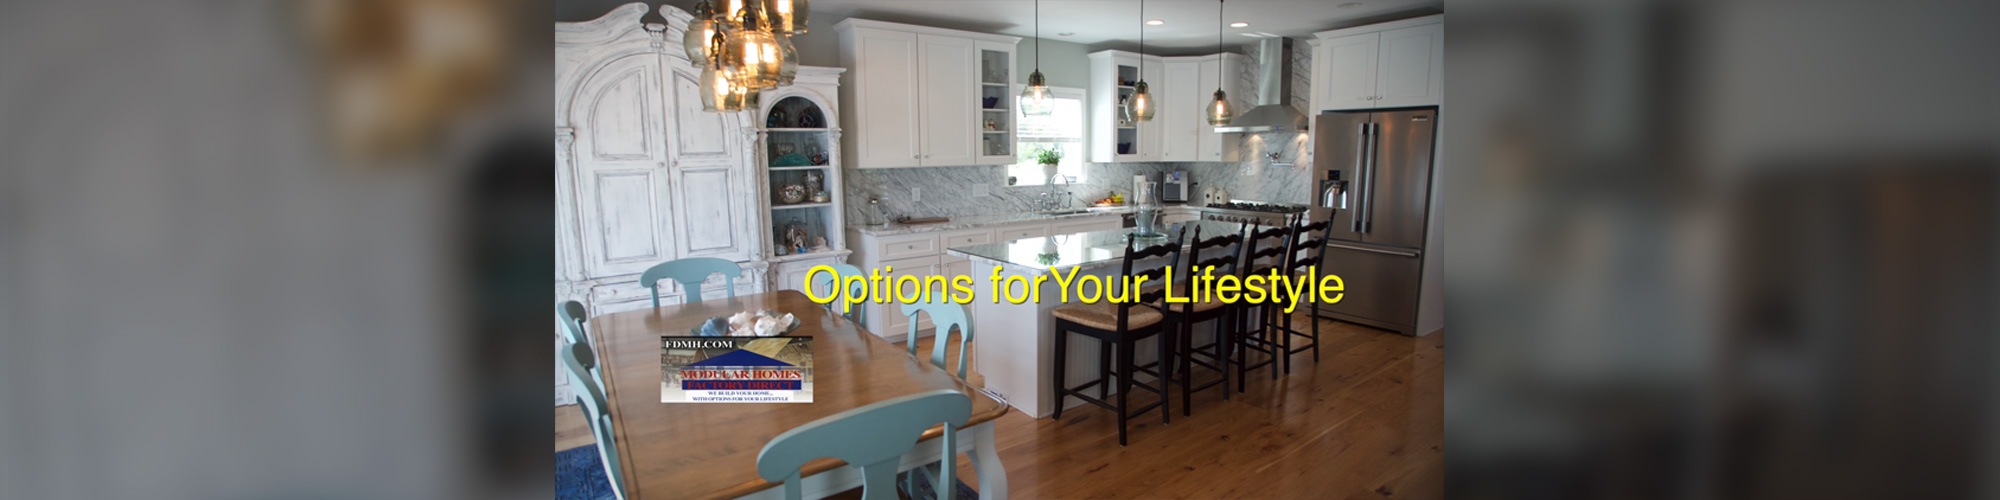 Options for Your Lifestyle